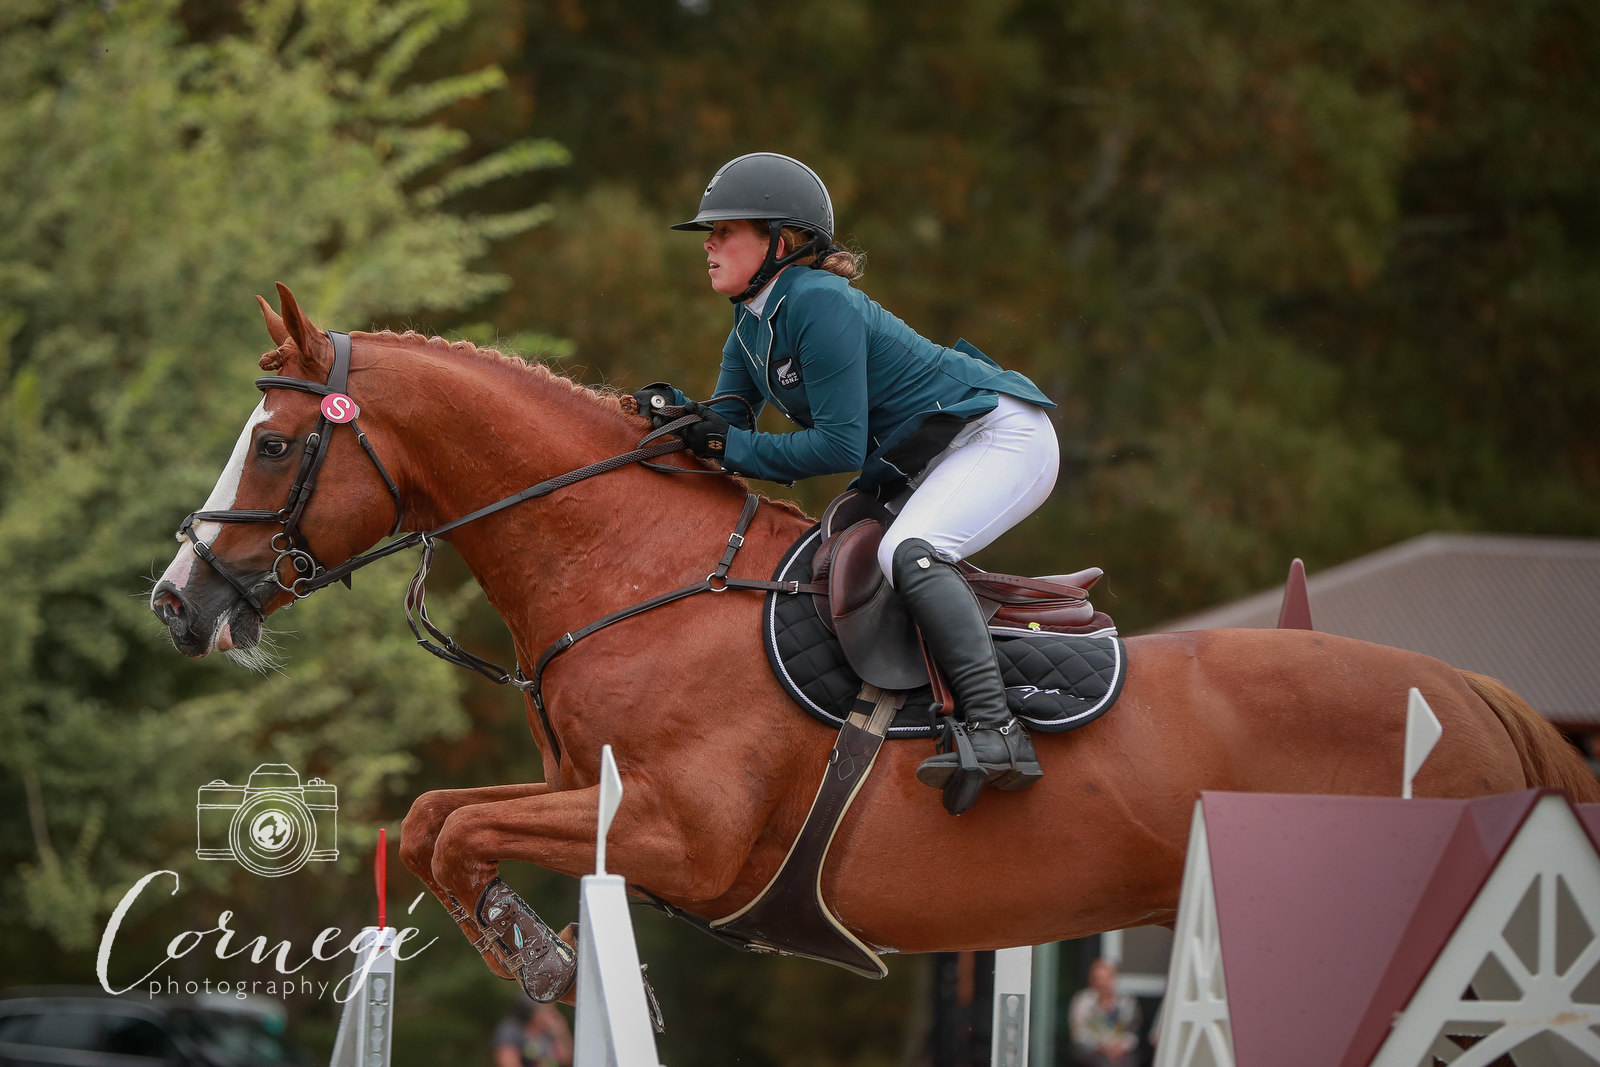 902 Gold Tour Qualifier One Takapoto Show Jumping Week One - Feb 2019 Photos by: Christine Cornege/ Cornege Photography